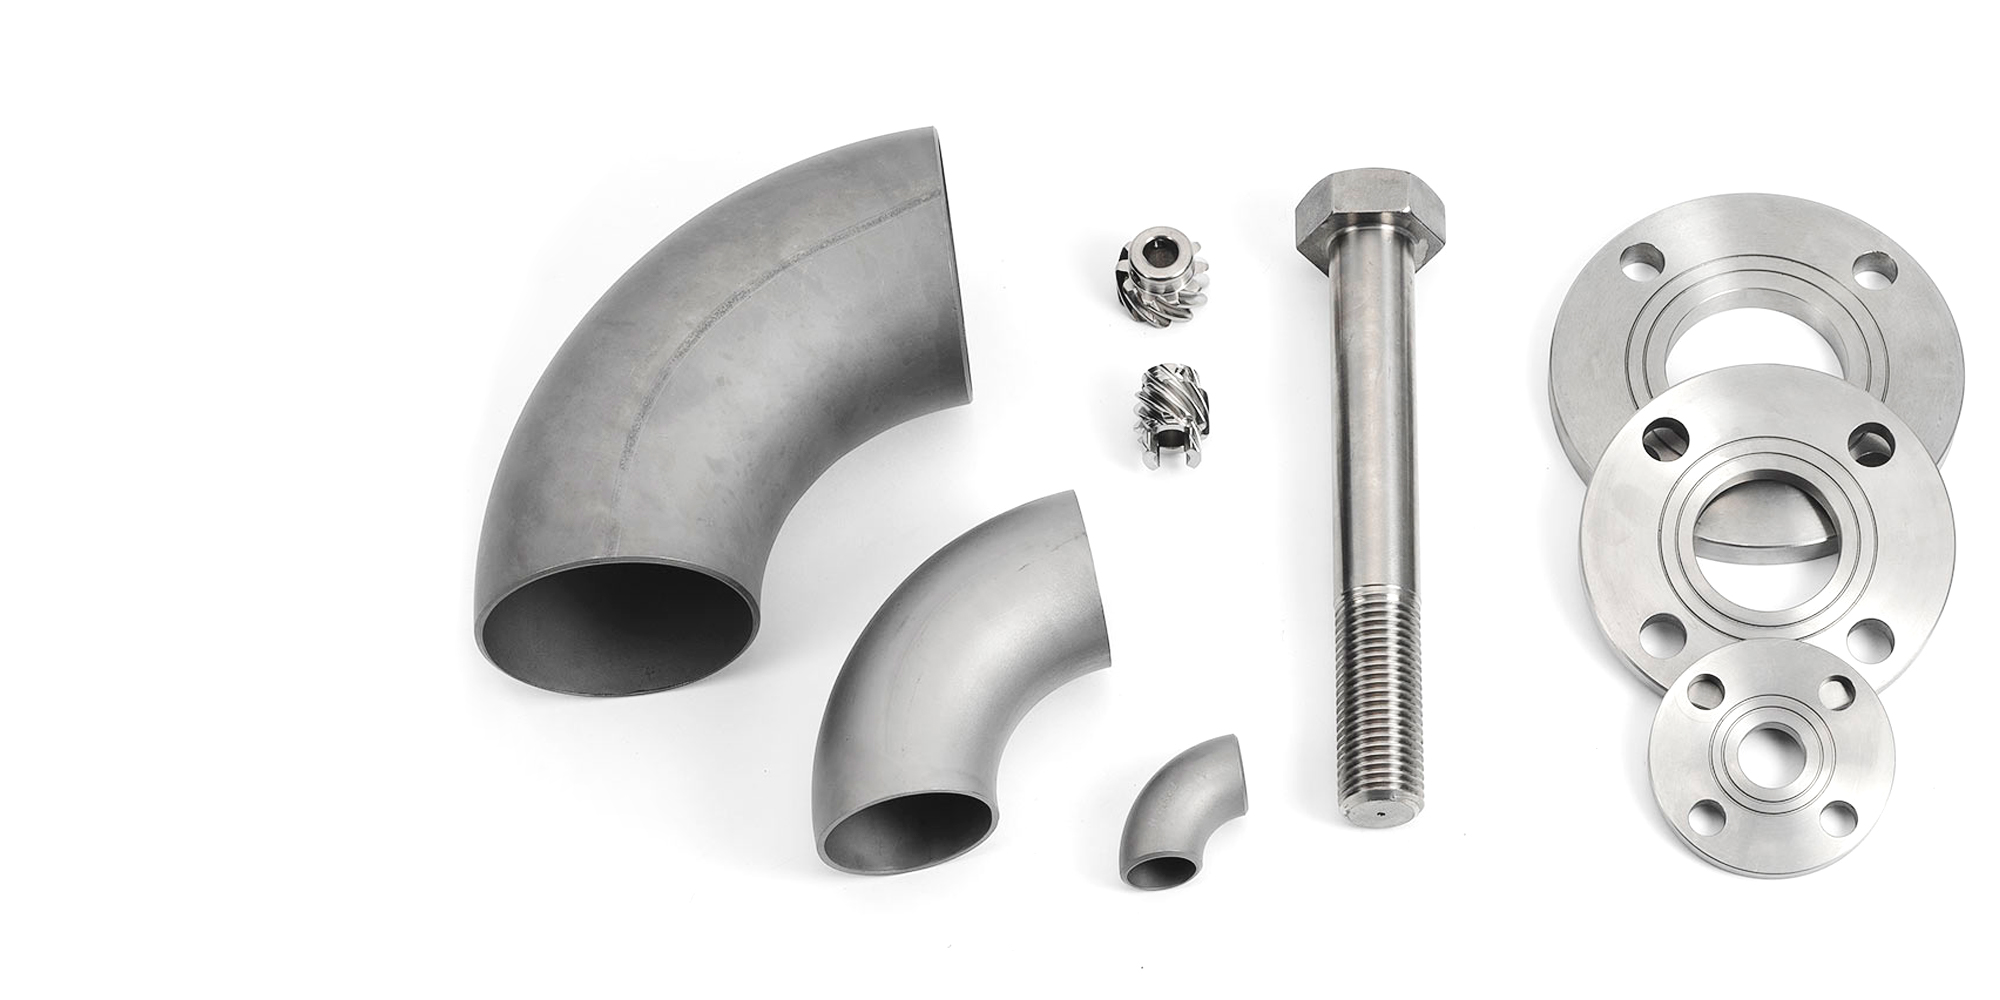 Titanium<br><strong>ACCESSORIES</strong>